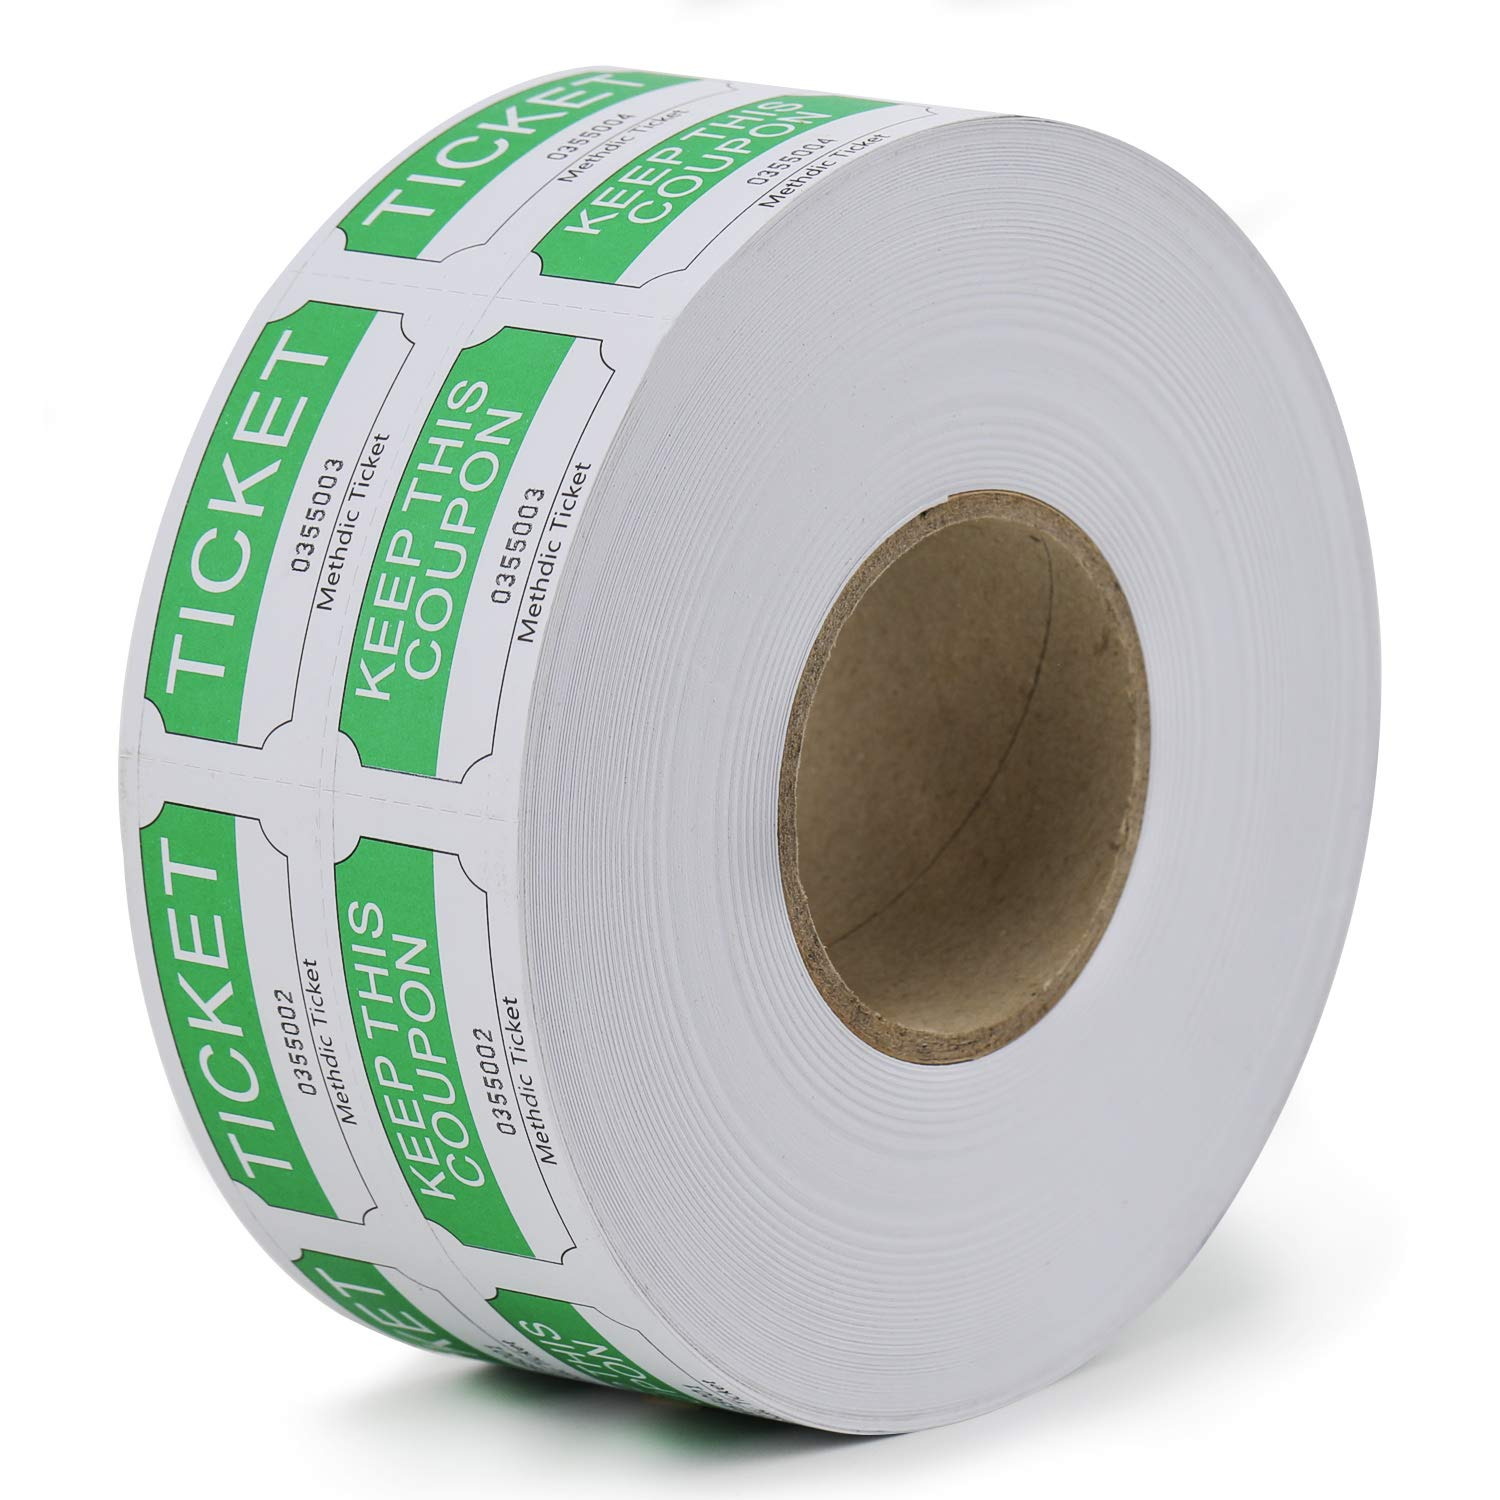 Methdic 50/50 Raffle Tickets Double Roll 1000 Thick Tickets Offset Paper (Green)